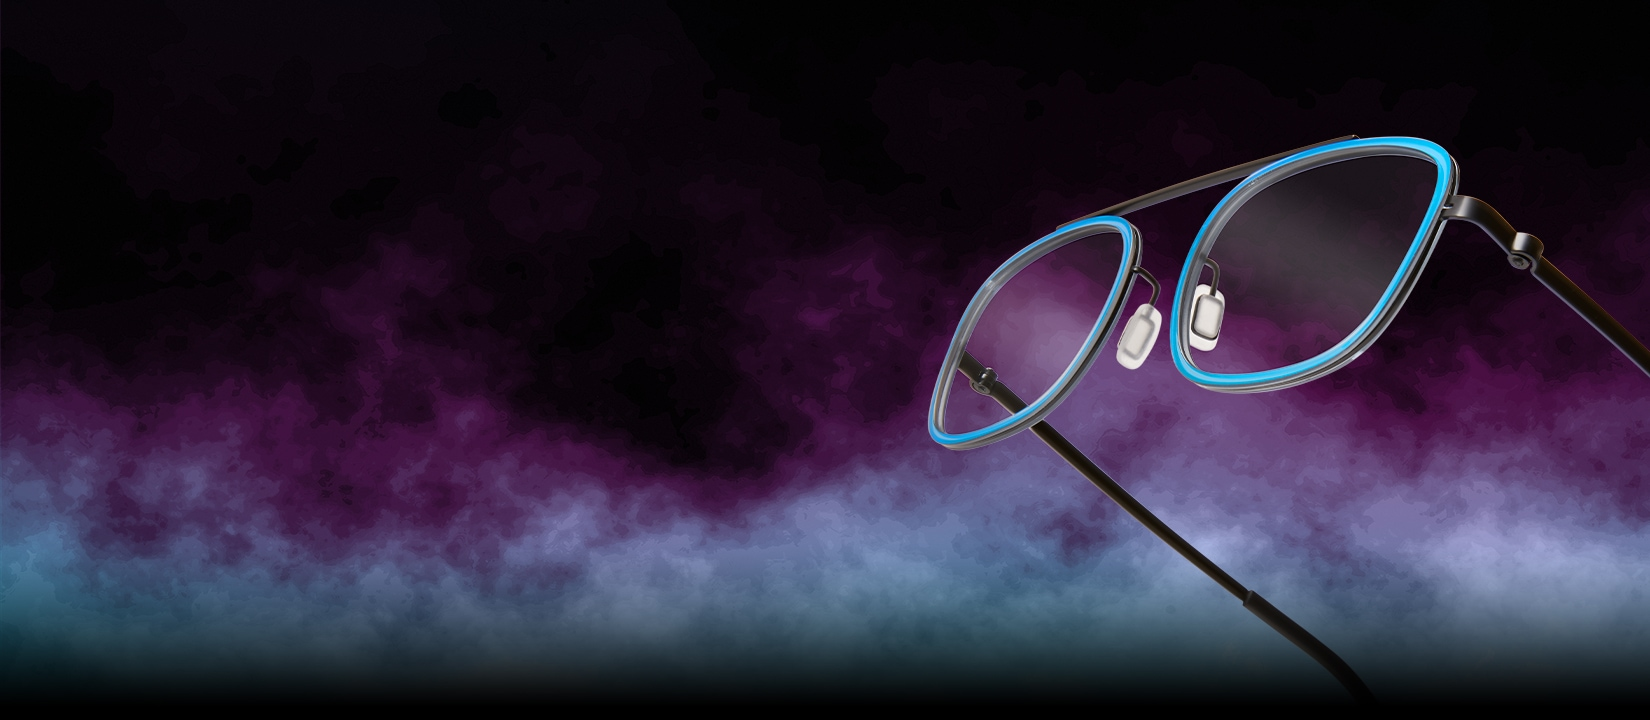 Zenni Gaming. Play longer. Play stronger. Armor your eyes. Image of Zenni rectangle glasses #7818116 against a black background, surrounded by colorful fog. Protection. Reduce eyestrain by blocking blue light with Zenni's blokz lens technology. Lightweight. Comfortable glasses with virtually no color distortion. Options. Find a style that is uniquely you. Affordable. Quality non-prescription and prescription gaming glasses for under $50.